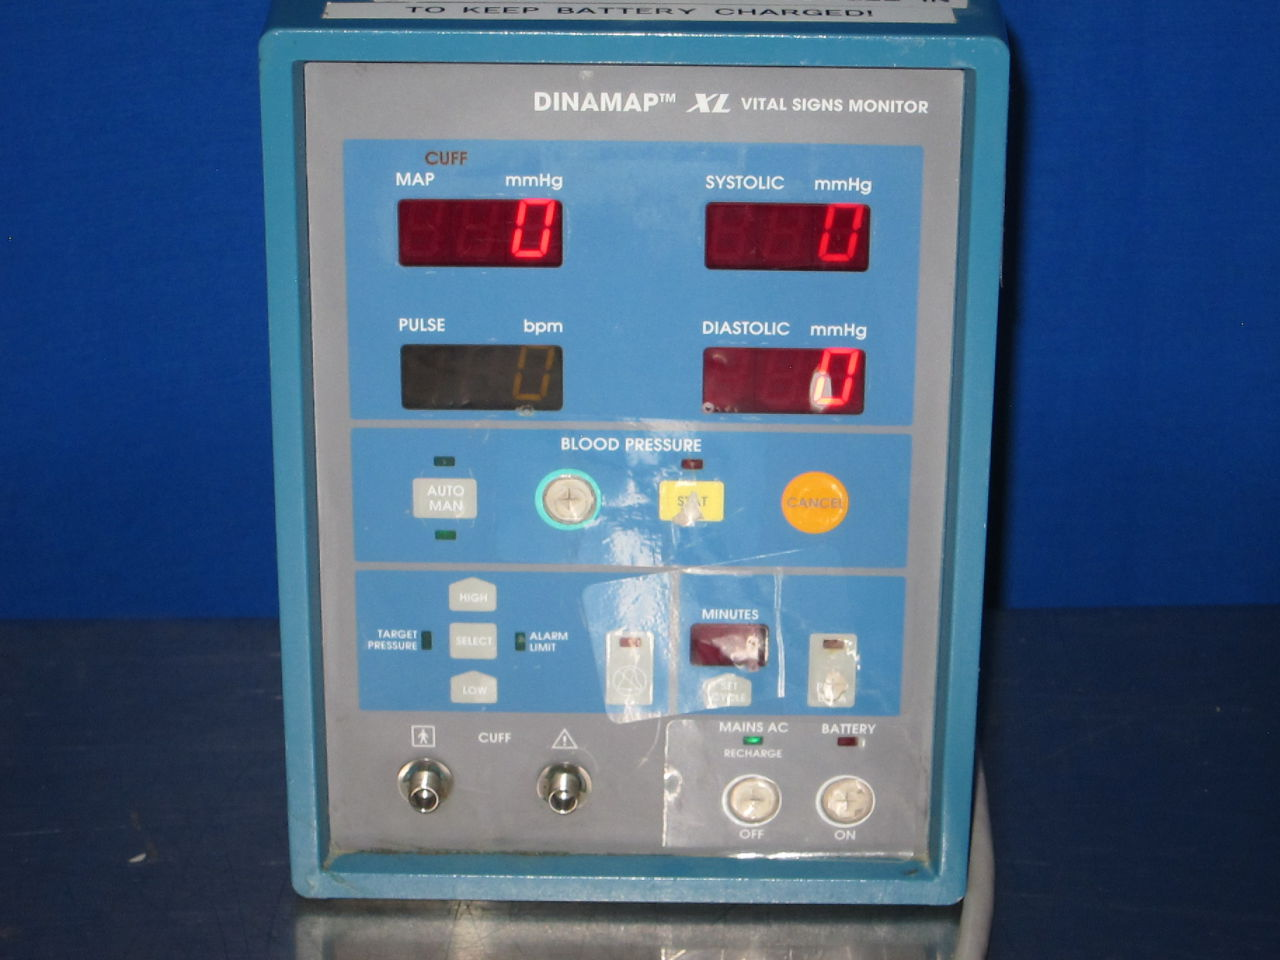 DINAMAP XL Monitor